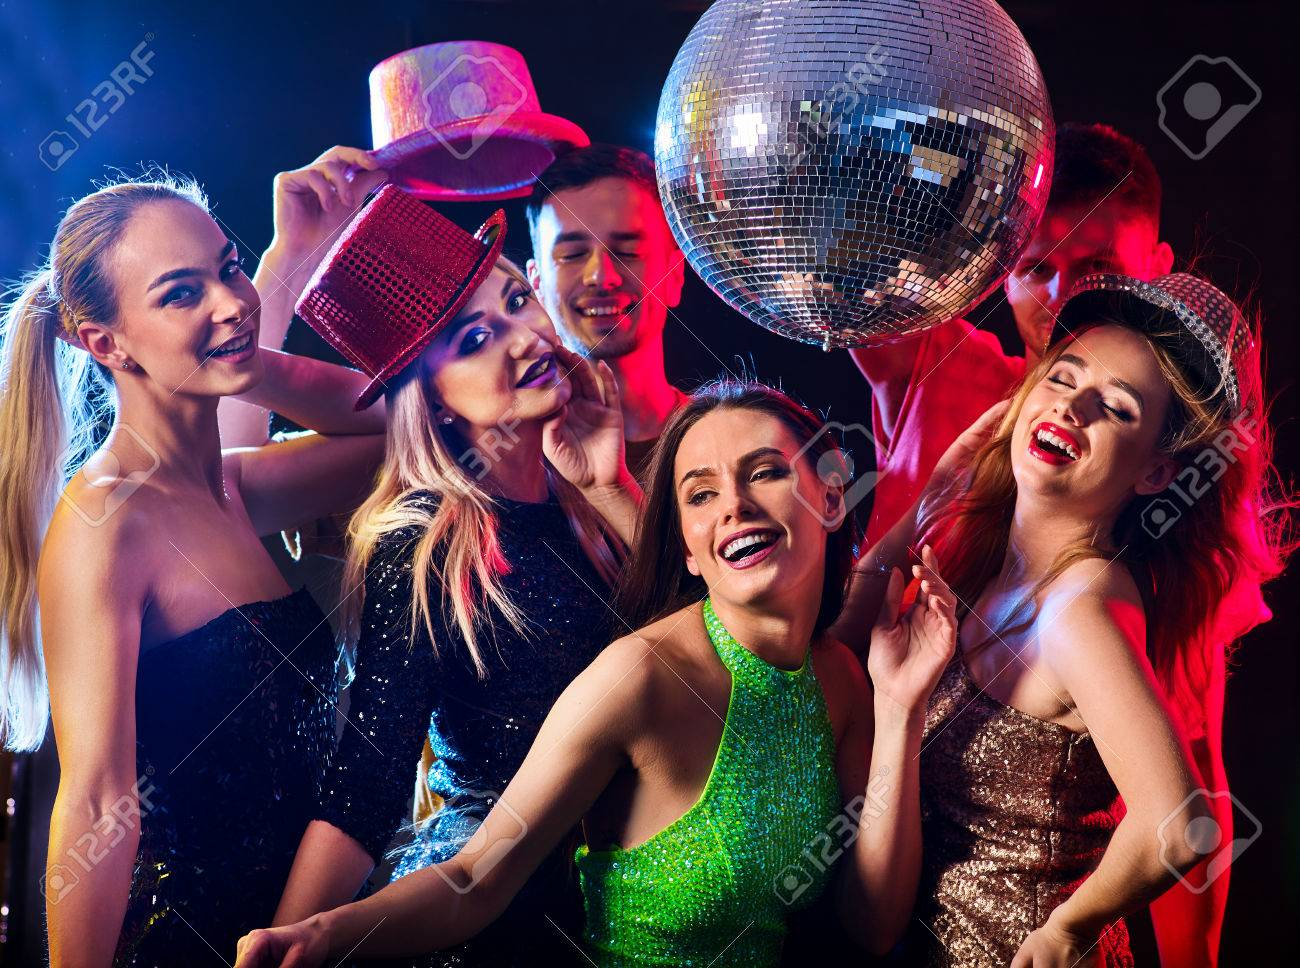 What to put on a disco for guys and girls